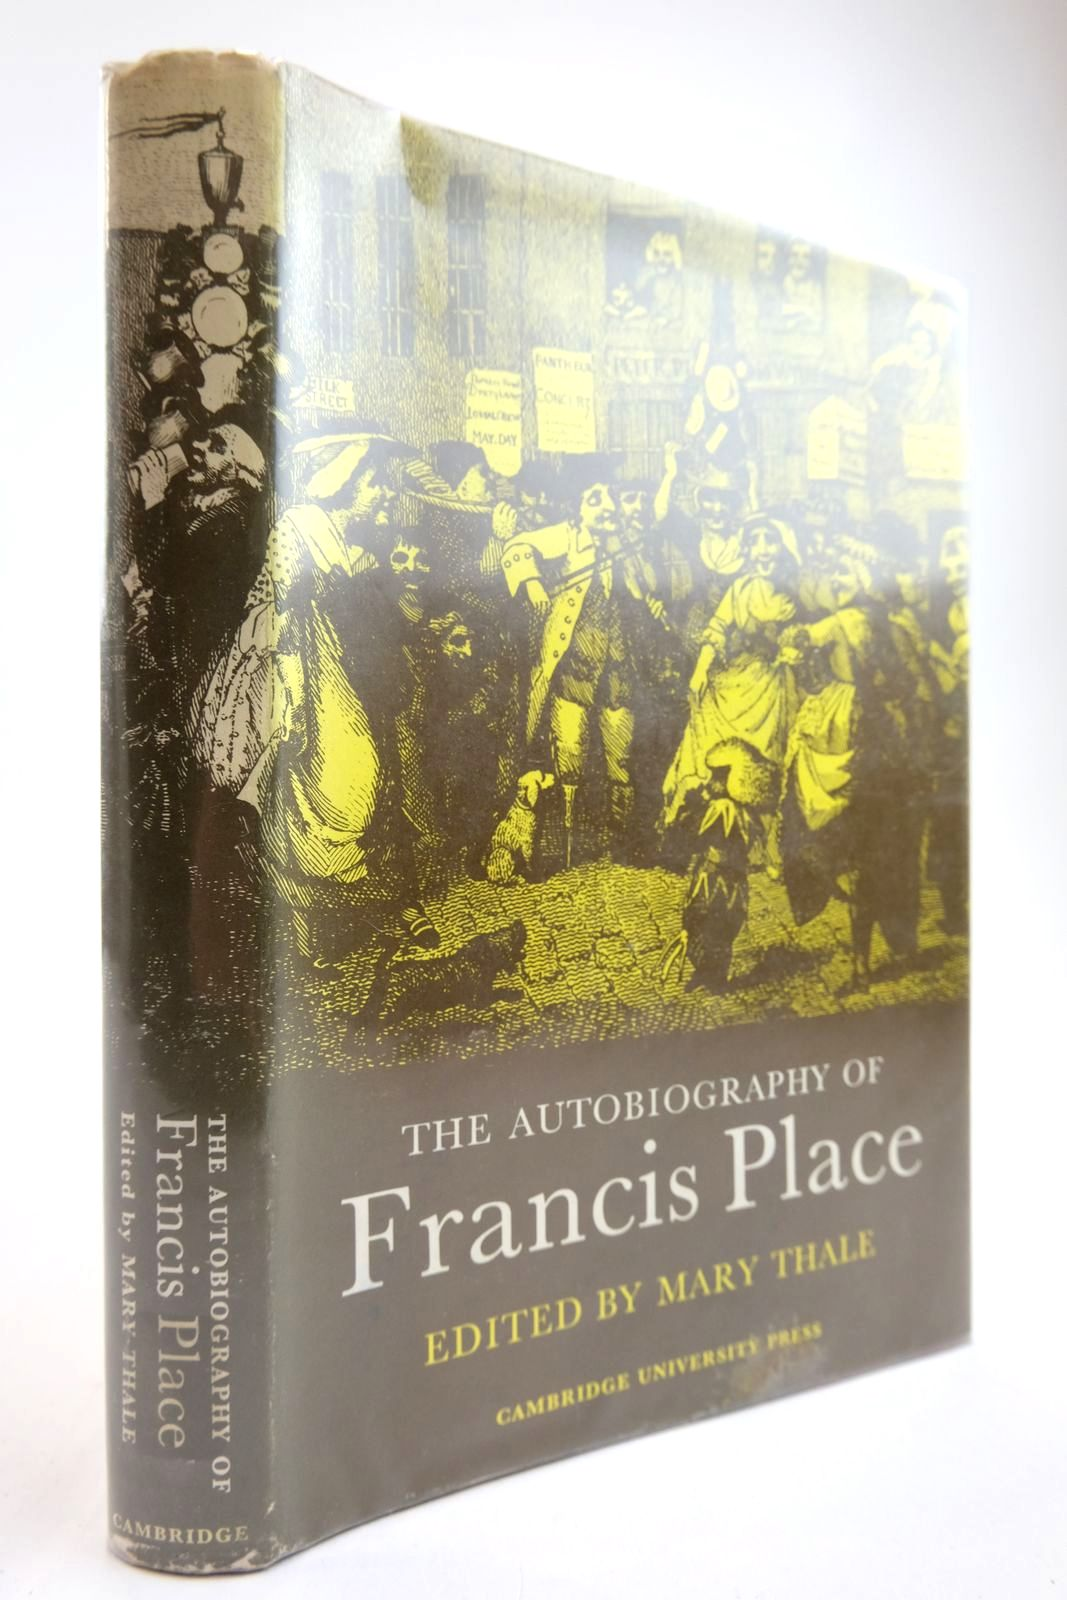 Photo of THE AUTOBIOGRAPHY OF FRANCIS PLACE (1771-1854) written by Thale, Mary published by Cambridge University Press (STOCK CODE: 2134031)  for sale by Stella & Rose's Books